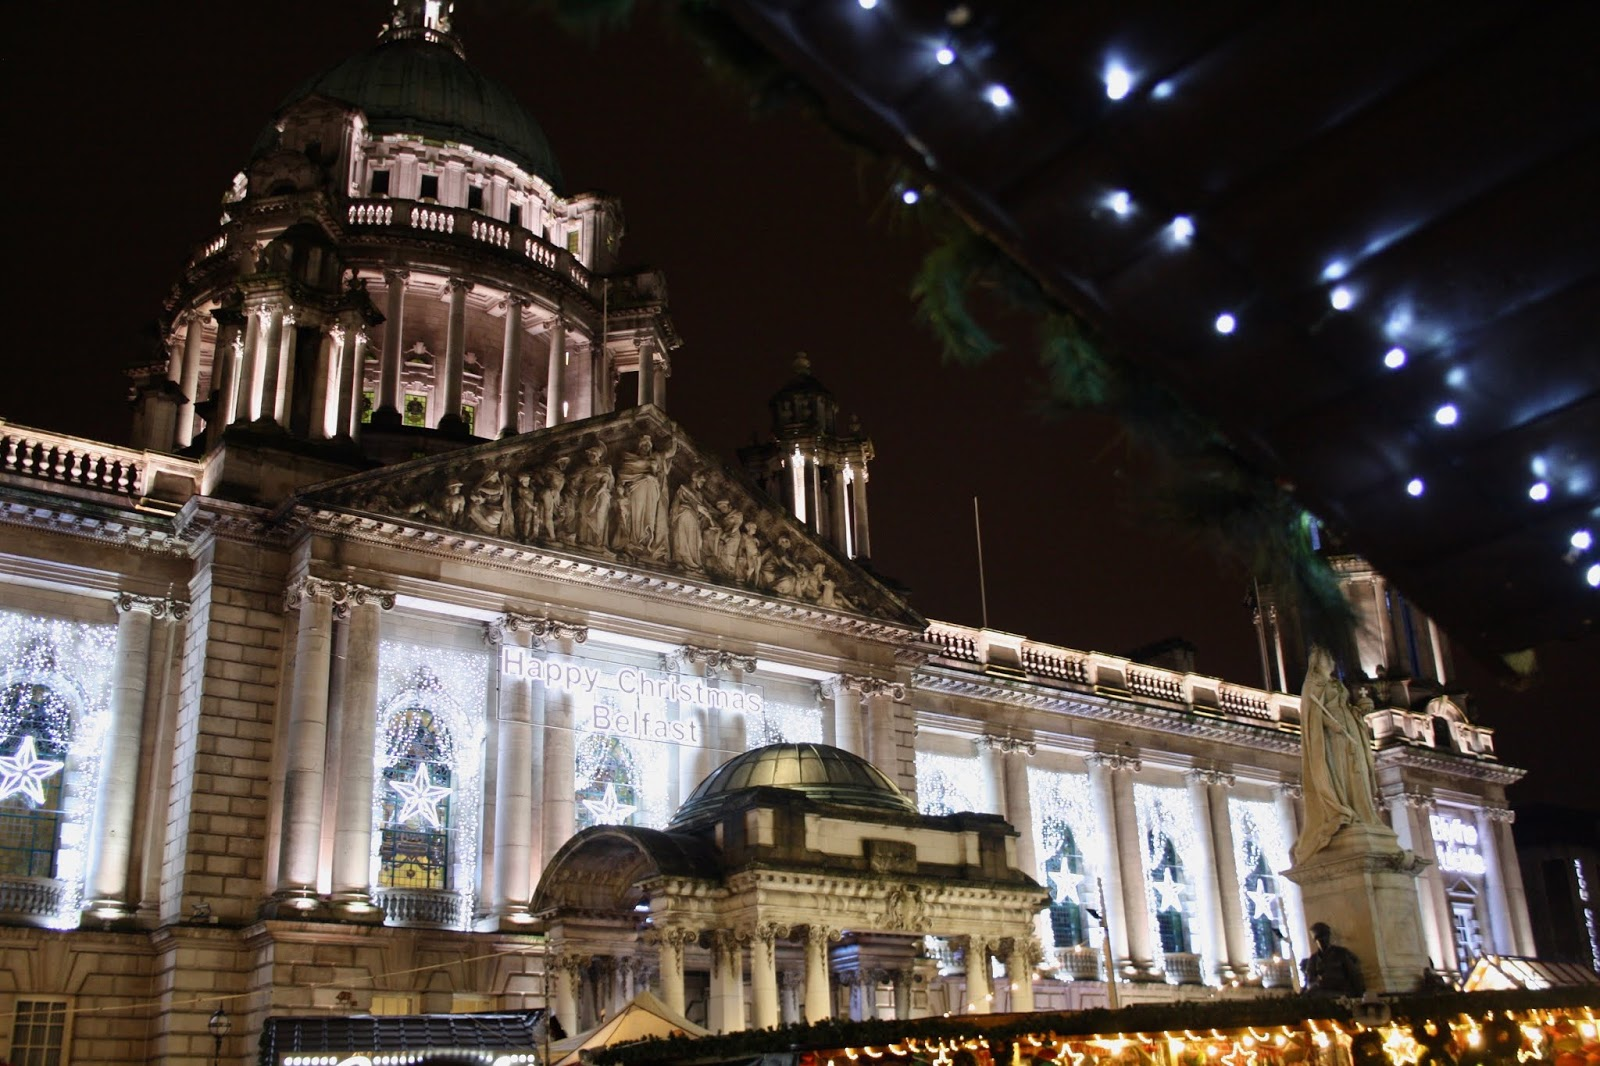 Belfast city hall Christmas markets